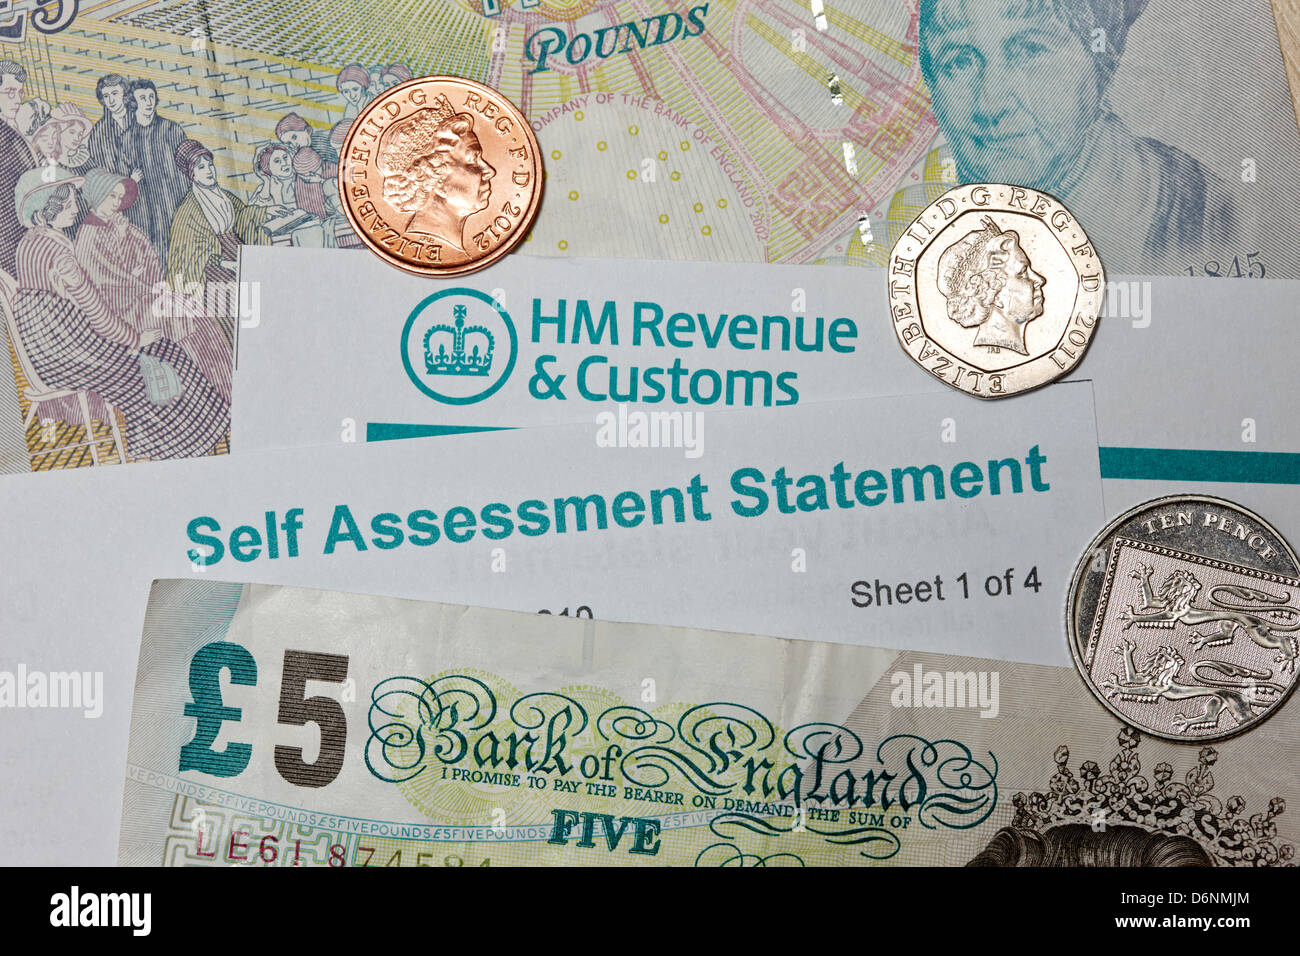 hmrc british revenue and customs self assessment statement for self employed people - Stock Image